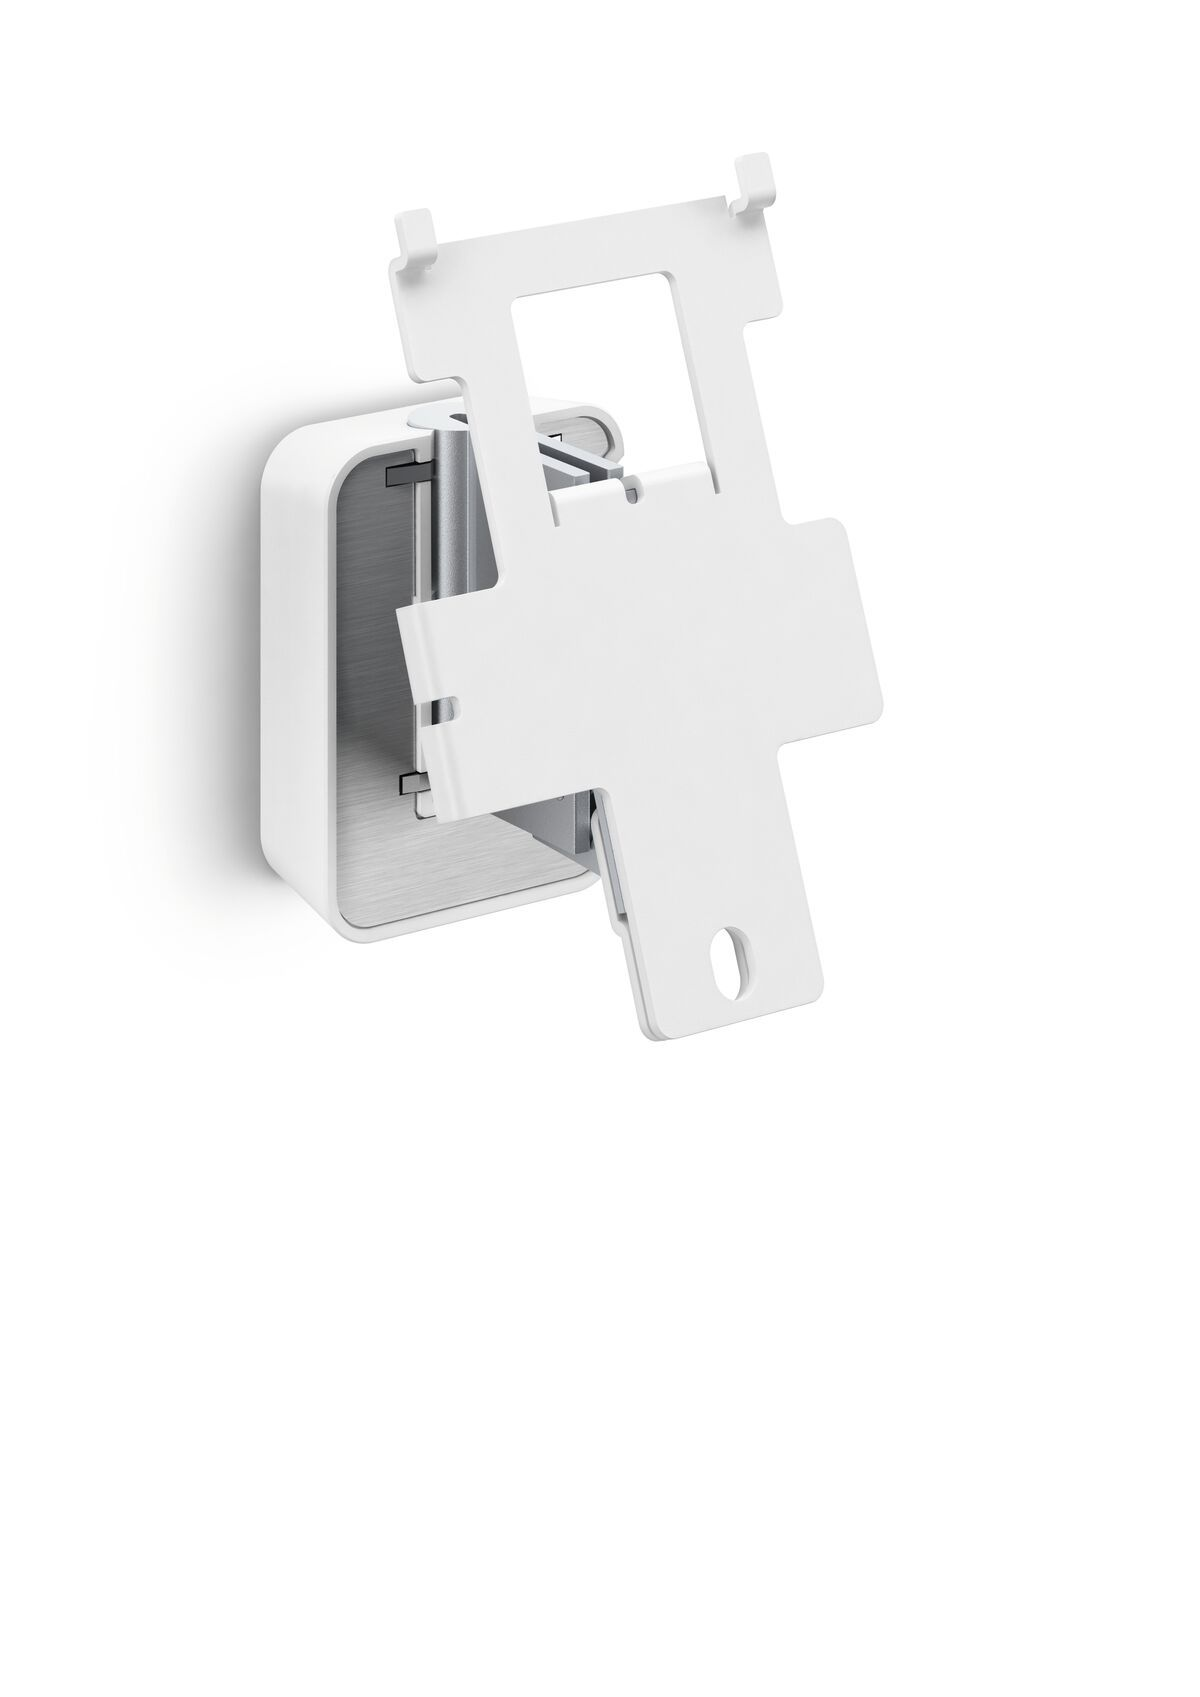 Vogel's SOUND 4203 Speaker Wall Mount for SONOS PLAY:3 (white) - Product